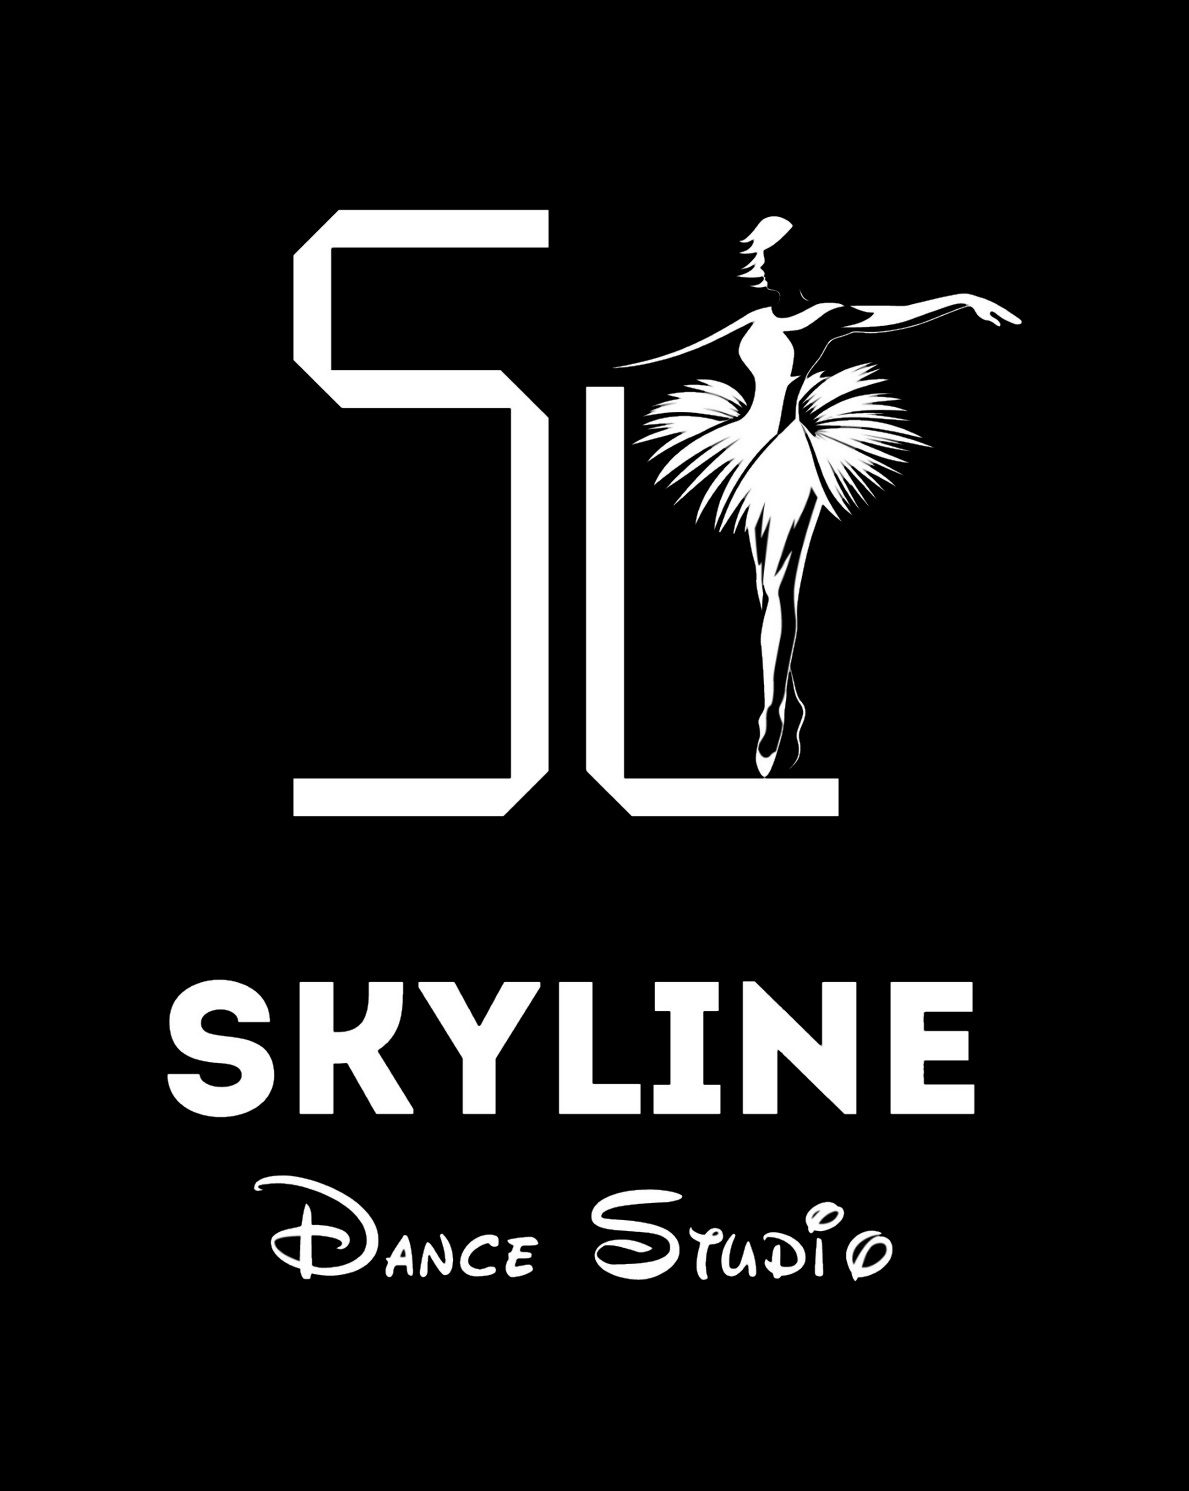 SkyLine Dance Studio